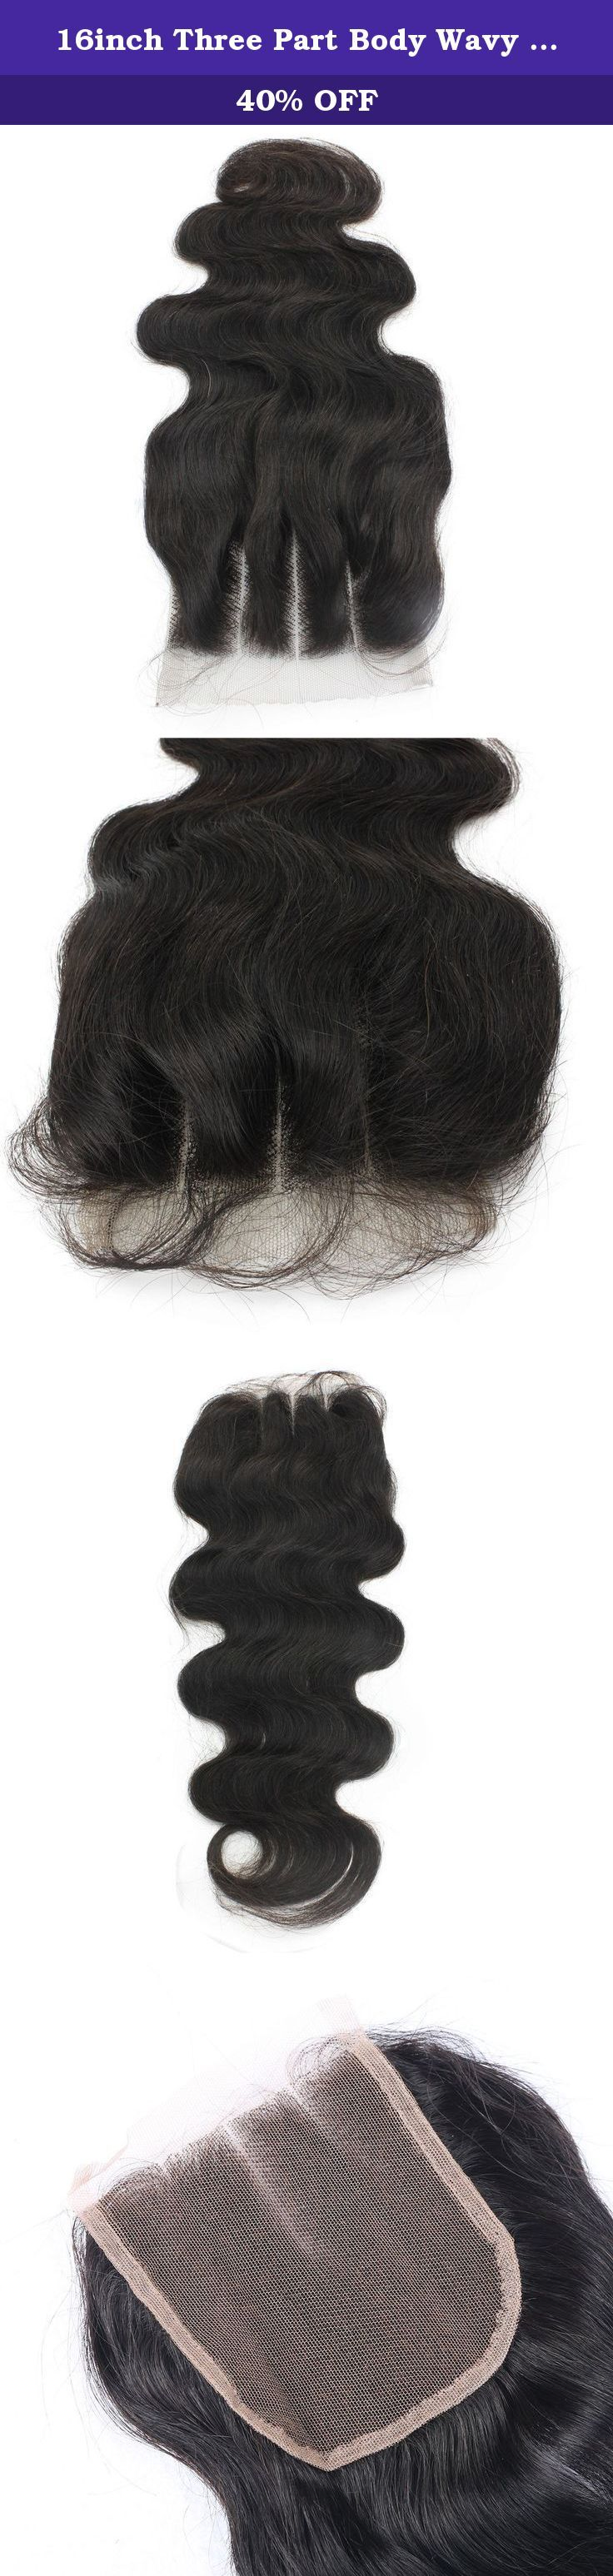 16inch Three Part Body Wavy Lace Closure Human Hair Brazilian Virgin Hair Lace Top Closure 44 Size At Mxangle. Product details: Hair Material: 100% Peruvian human remy hair Texture: body wave, perm or curl is okay, can be restyled according your need! Lace size: swiss lace 4*4 8inch~22inch available three part Weight: 30g~40g/pc Color: unprocessed natural color, can be dyed and bleached Quality: no tangle, no shedding, no chemical additive, 7A human remy hair Service: excellent customer...